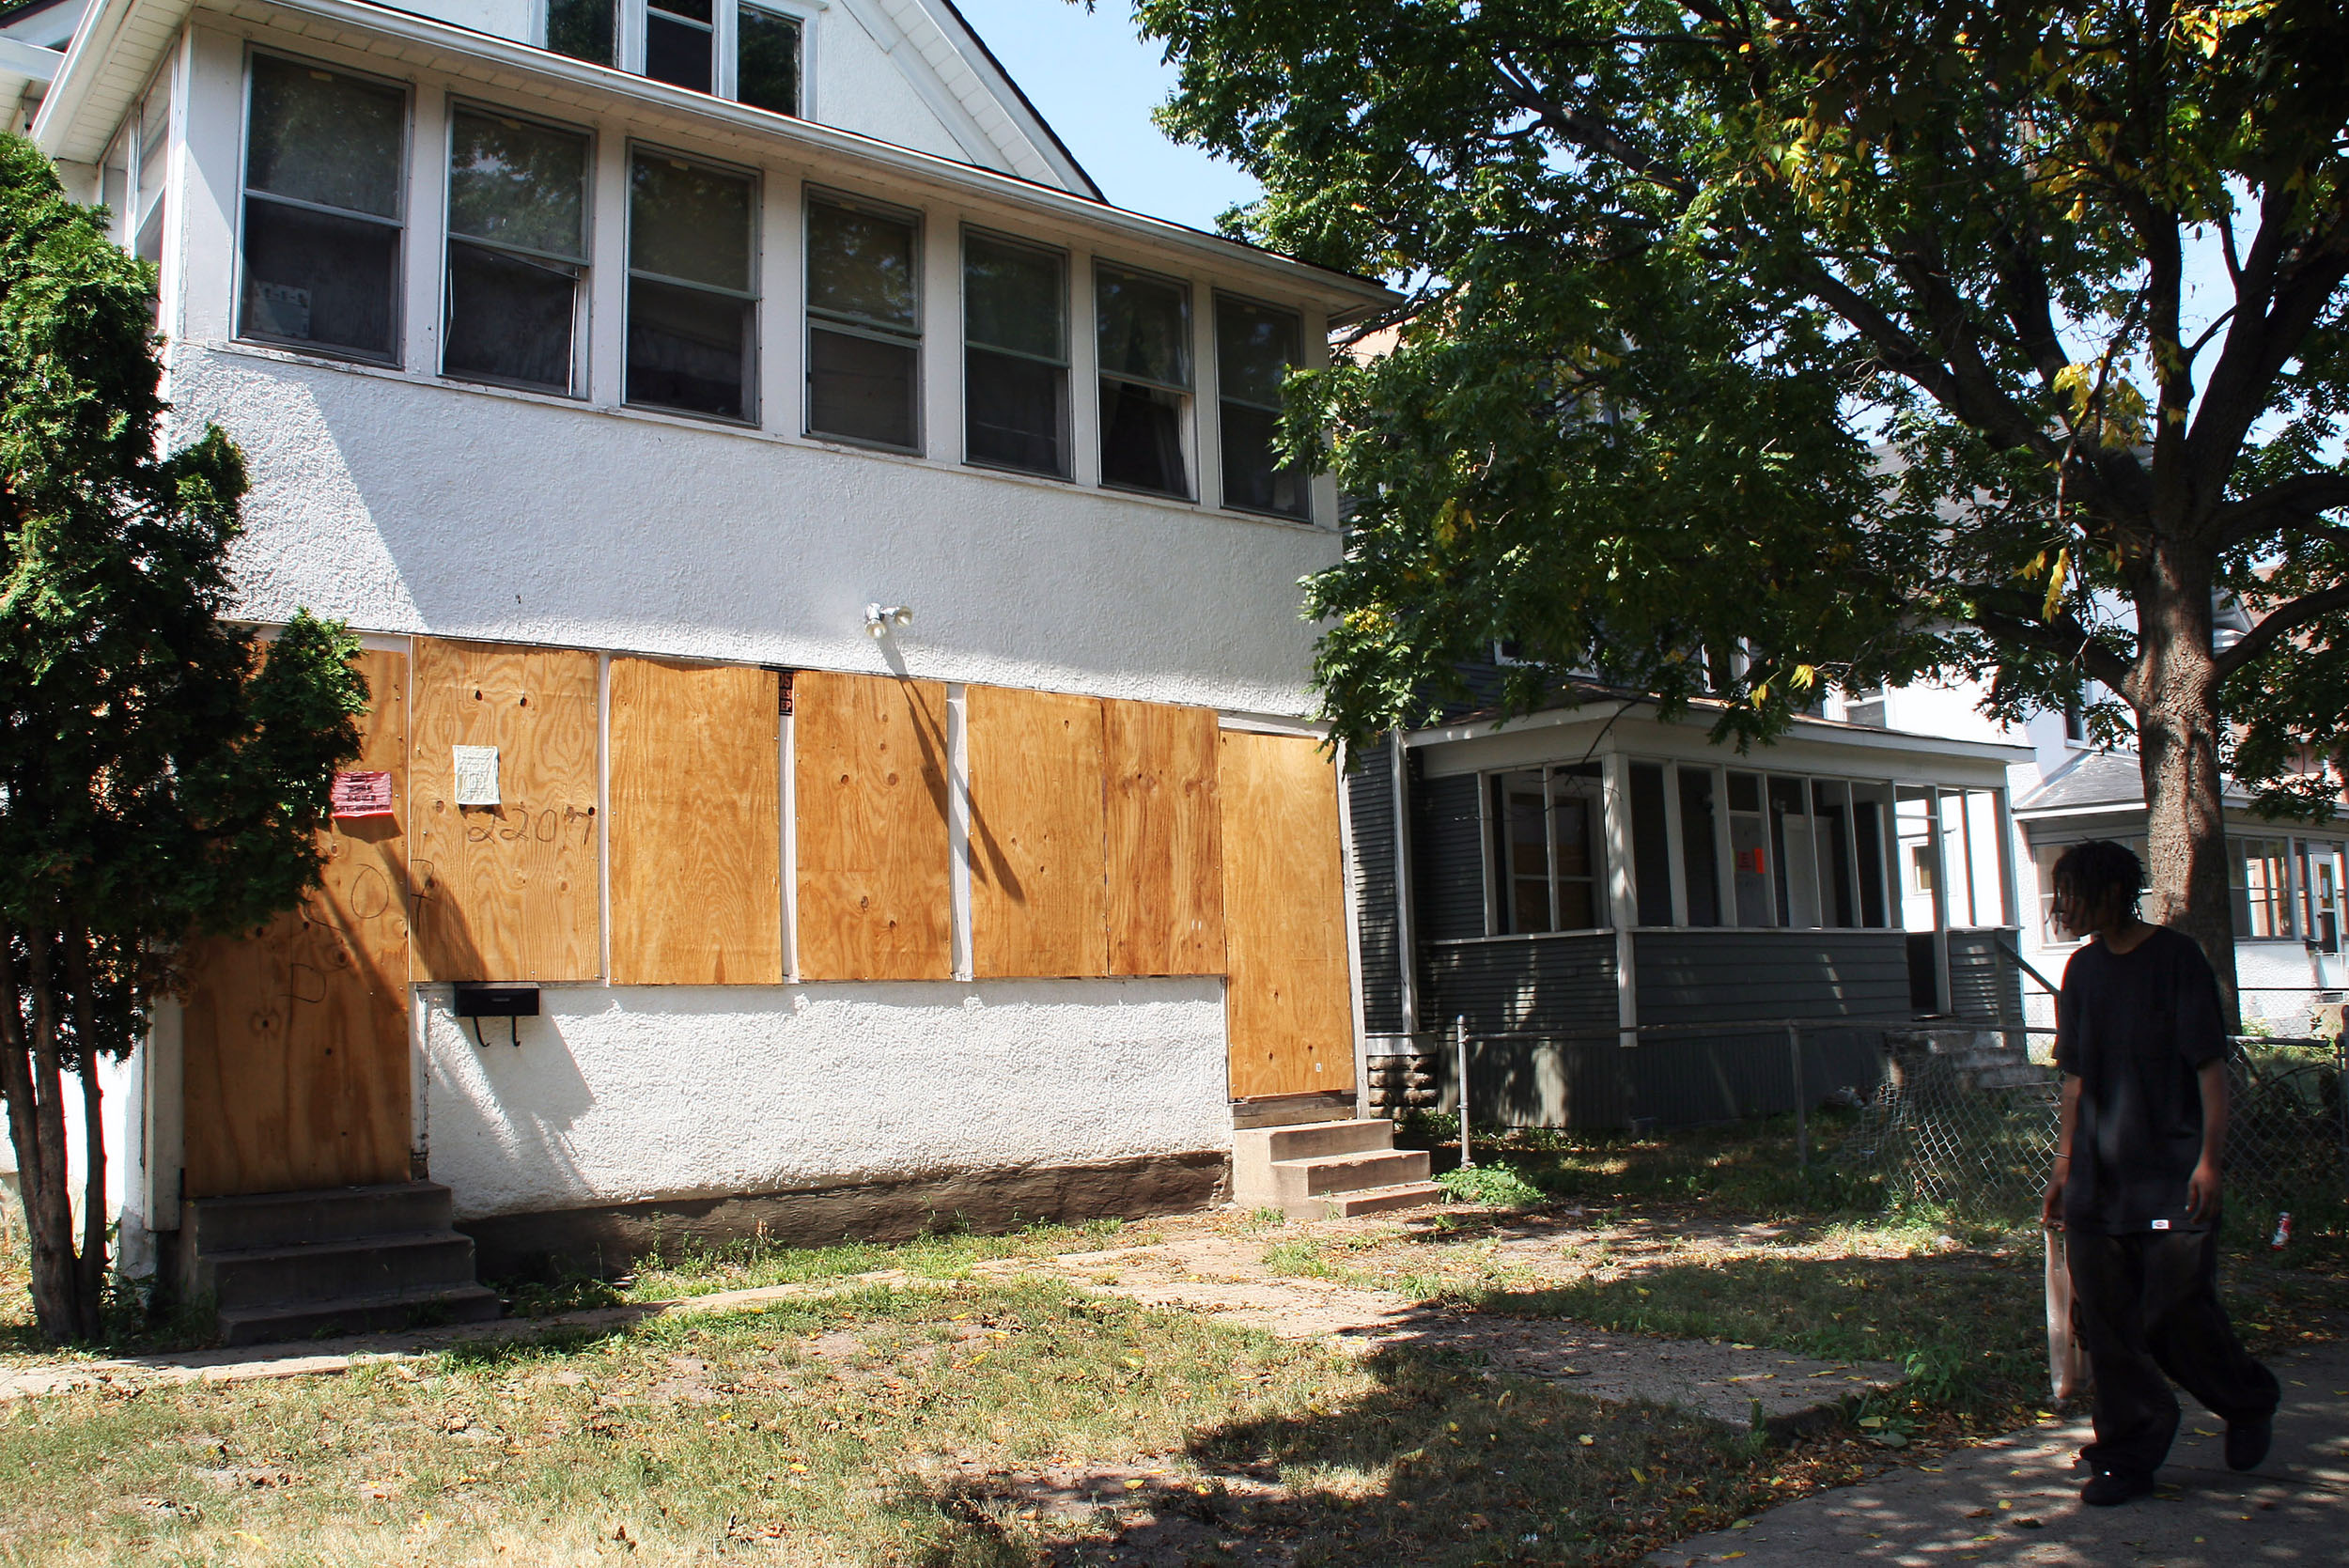 A home is boarded up Aug 10, 2007, in the North Minneapolis, Minnesota, neighborhood, which saw some of the nation's highest foreclosure rates from 2004-2008.